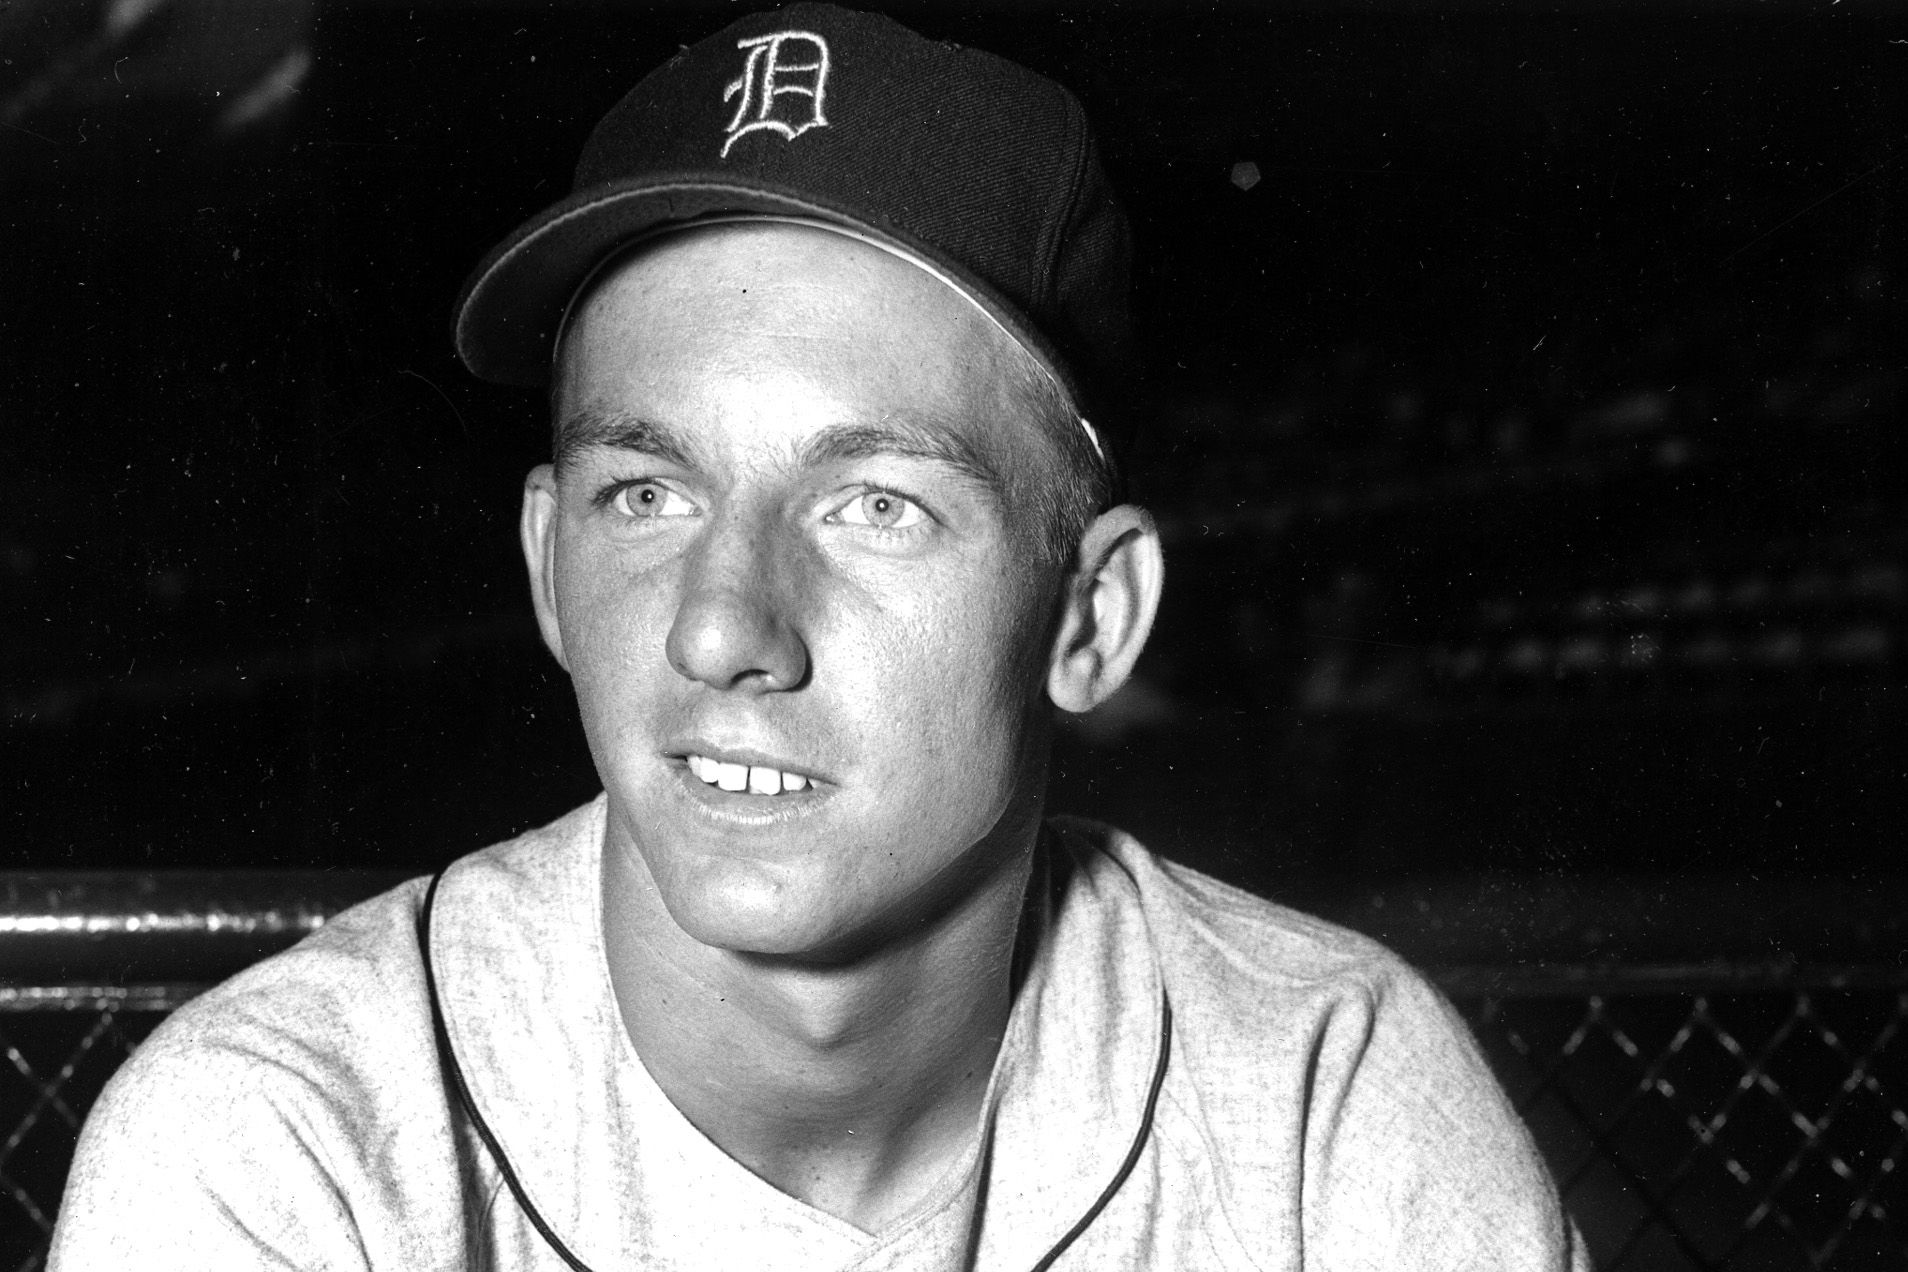 FILE - This is June 23, 1953, file photo showing Detroit Tigers baseball player Al Kaline. Sports in 2020 was an unending state of mourning. It seemed a whole wing of the Baseball Hall of Fame was ripped away -- Al Kaline, Tom Seaver, Lou Brock, Bob Gibson, Whitey Ford, Joe Morgan, Phil Niekro. (AP Photo/FIle)